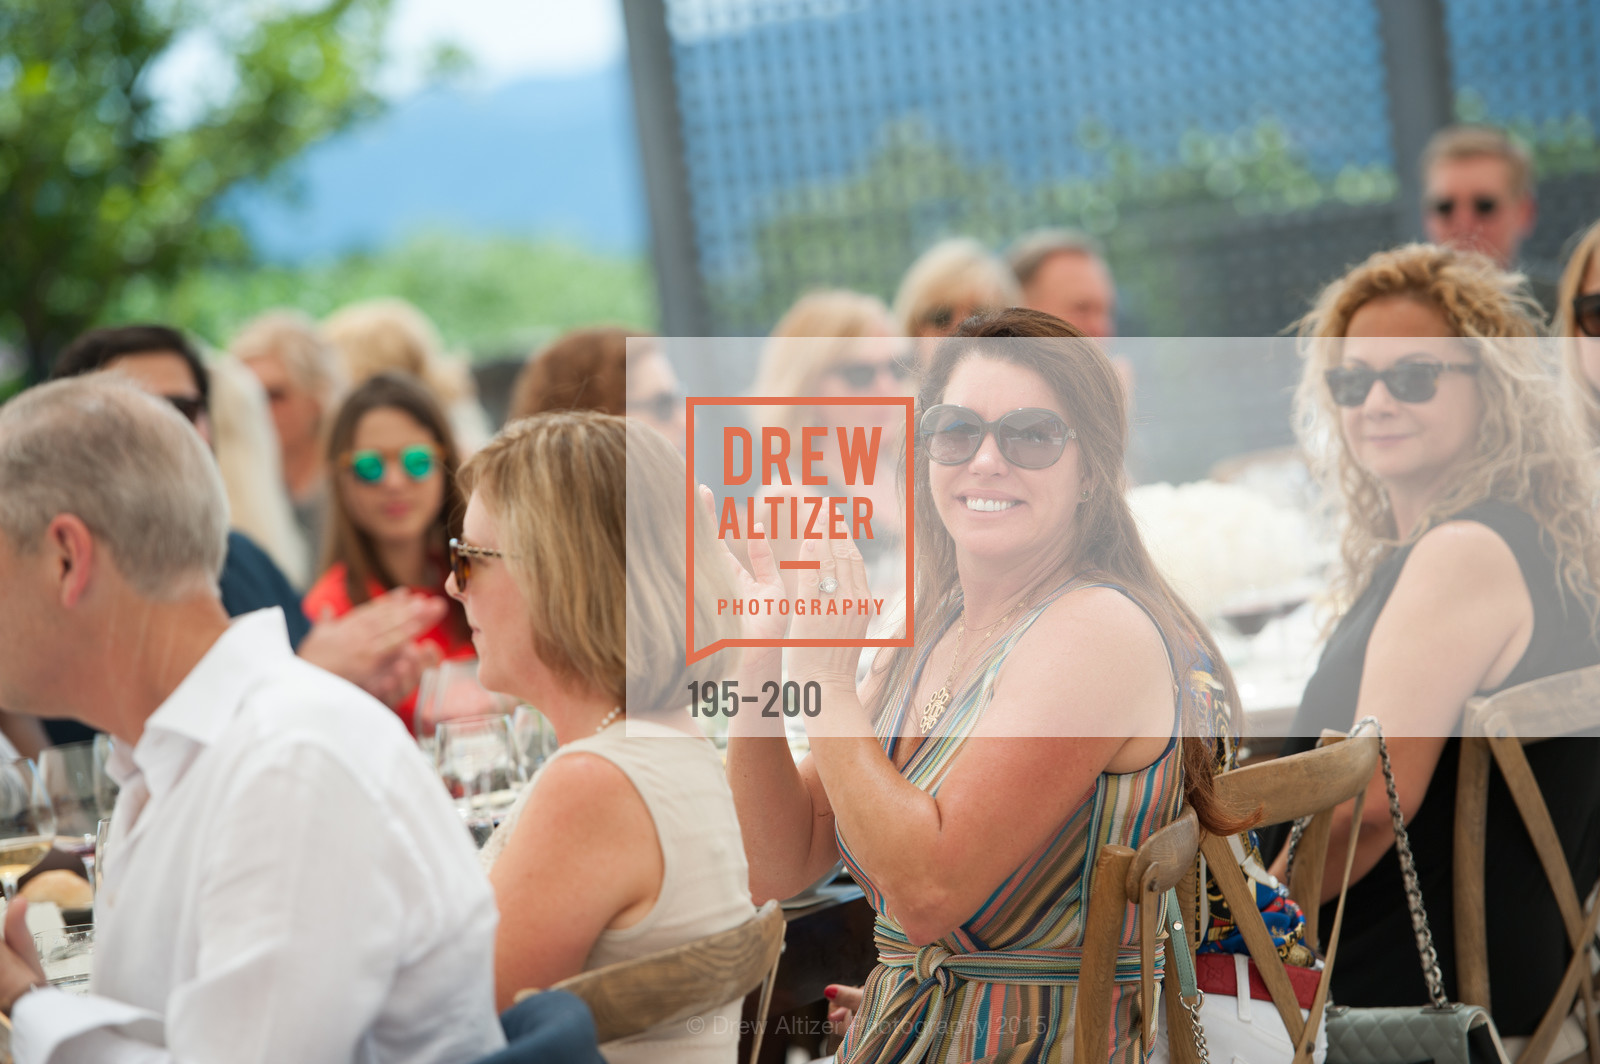 Extras, Festival del Sole Brunello Cucinelli Luncheon Hosted by Hall Wines and Neiman Marcus, July 19th, 2015, Photo,Drew Altizer, Drew Altizer Photography, full-service event agency, private events, San Francisco photographer, photographer California